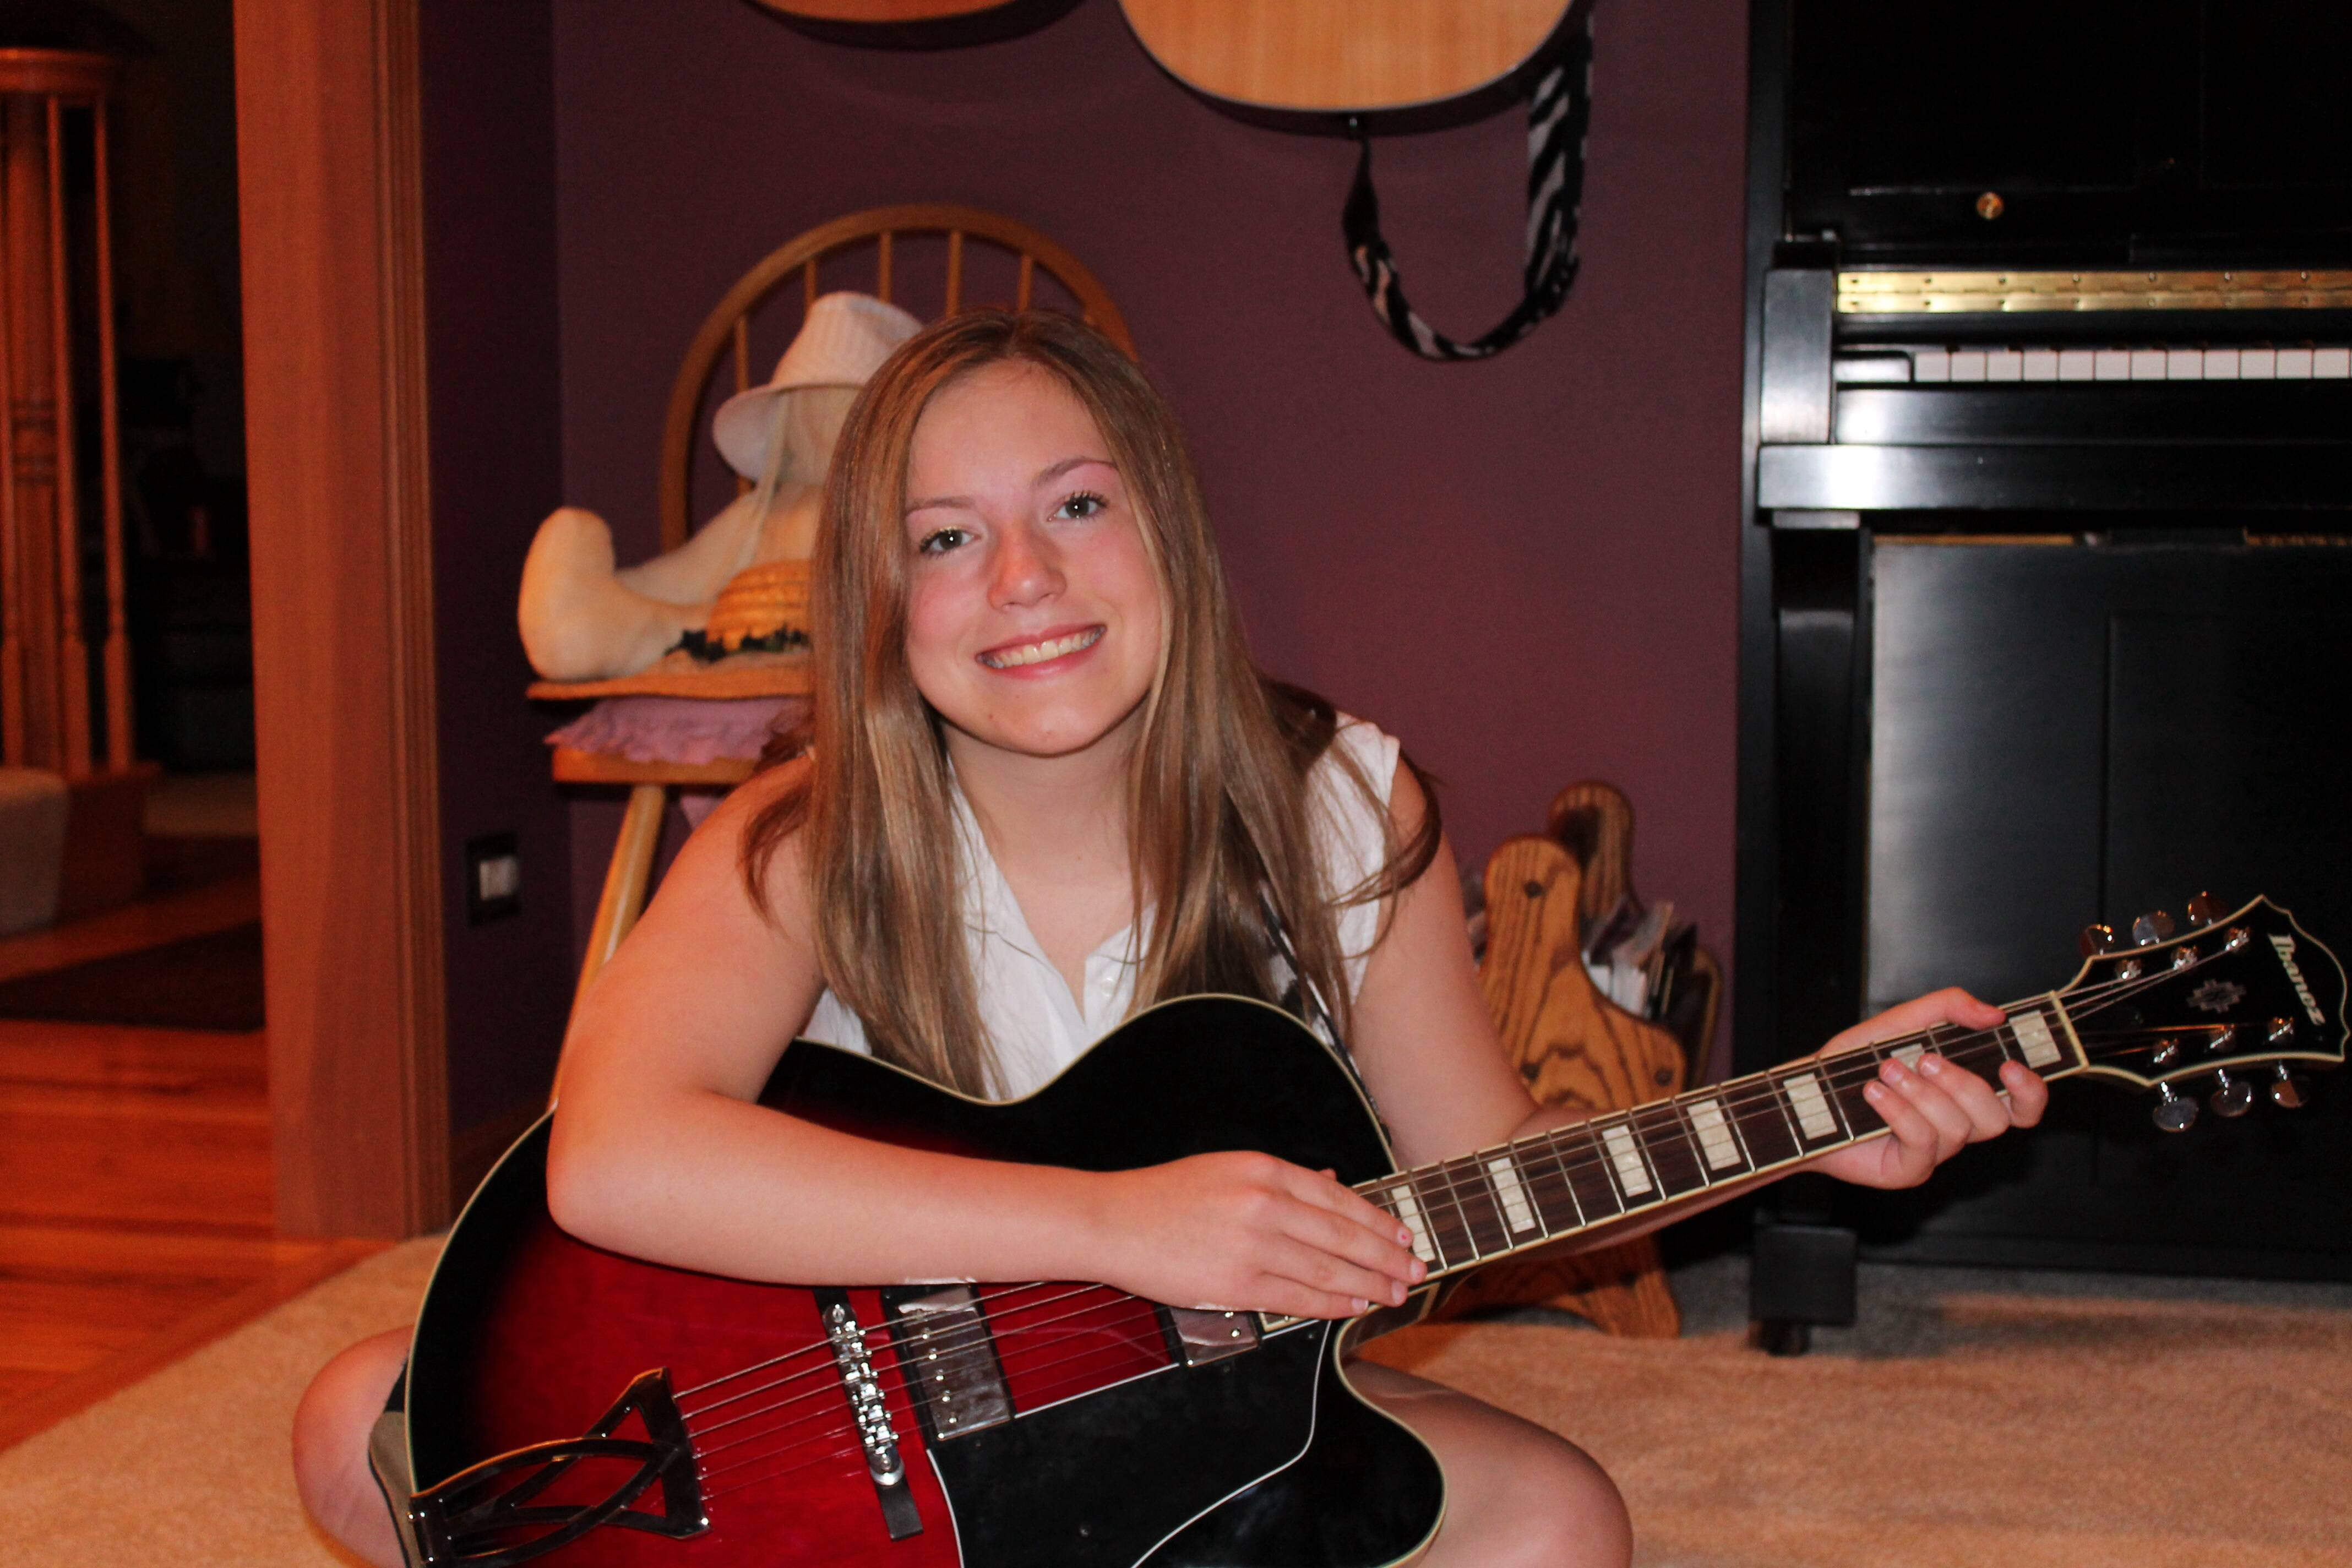 Twelve-year-old Bailey Cates, a guitarist and pianist, will perform a concert to raise money for the Kaneland Arts Initiative.